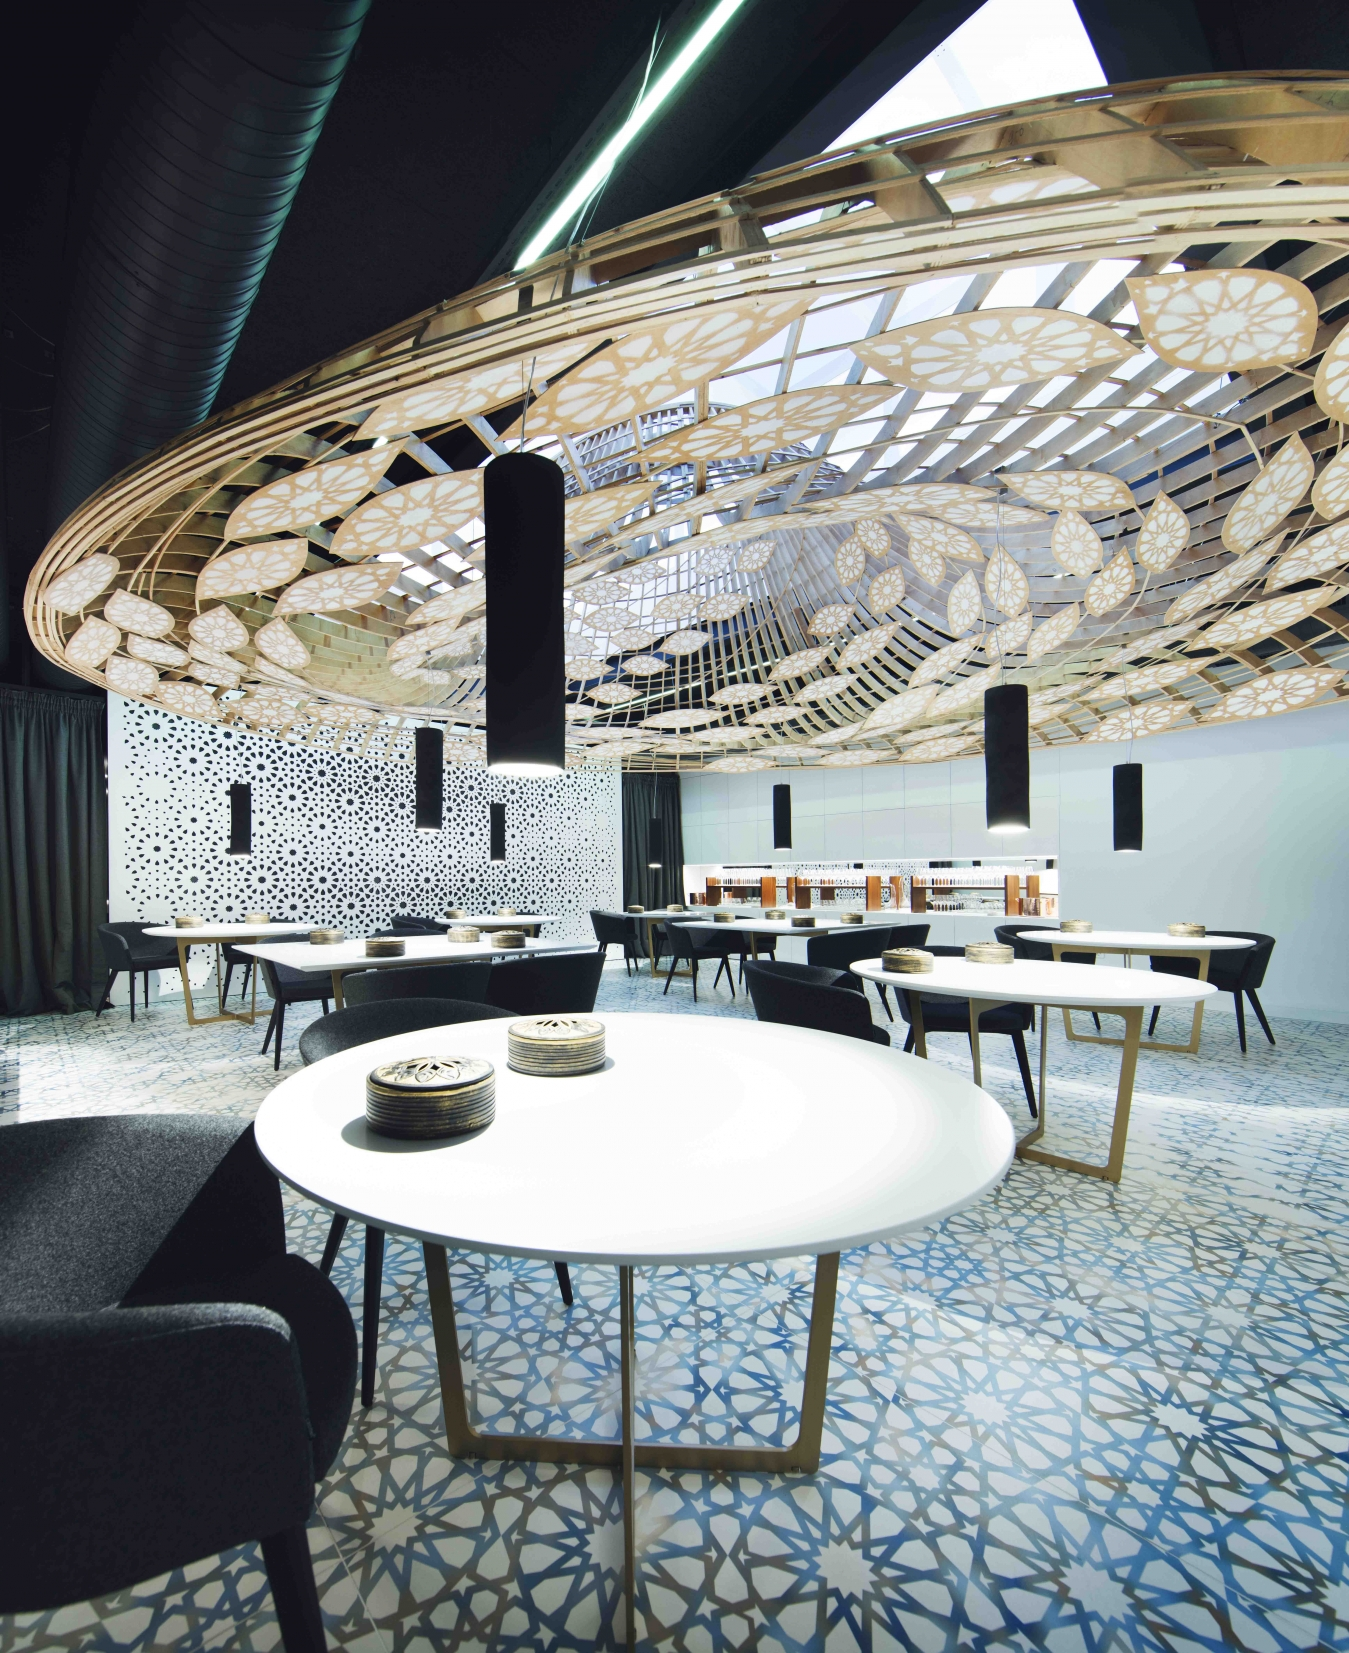 restaurant full of pattern by the gg architects 3 Restaurant full of pattern by the GG architects